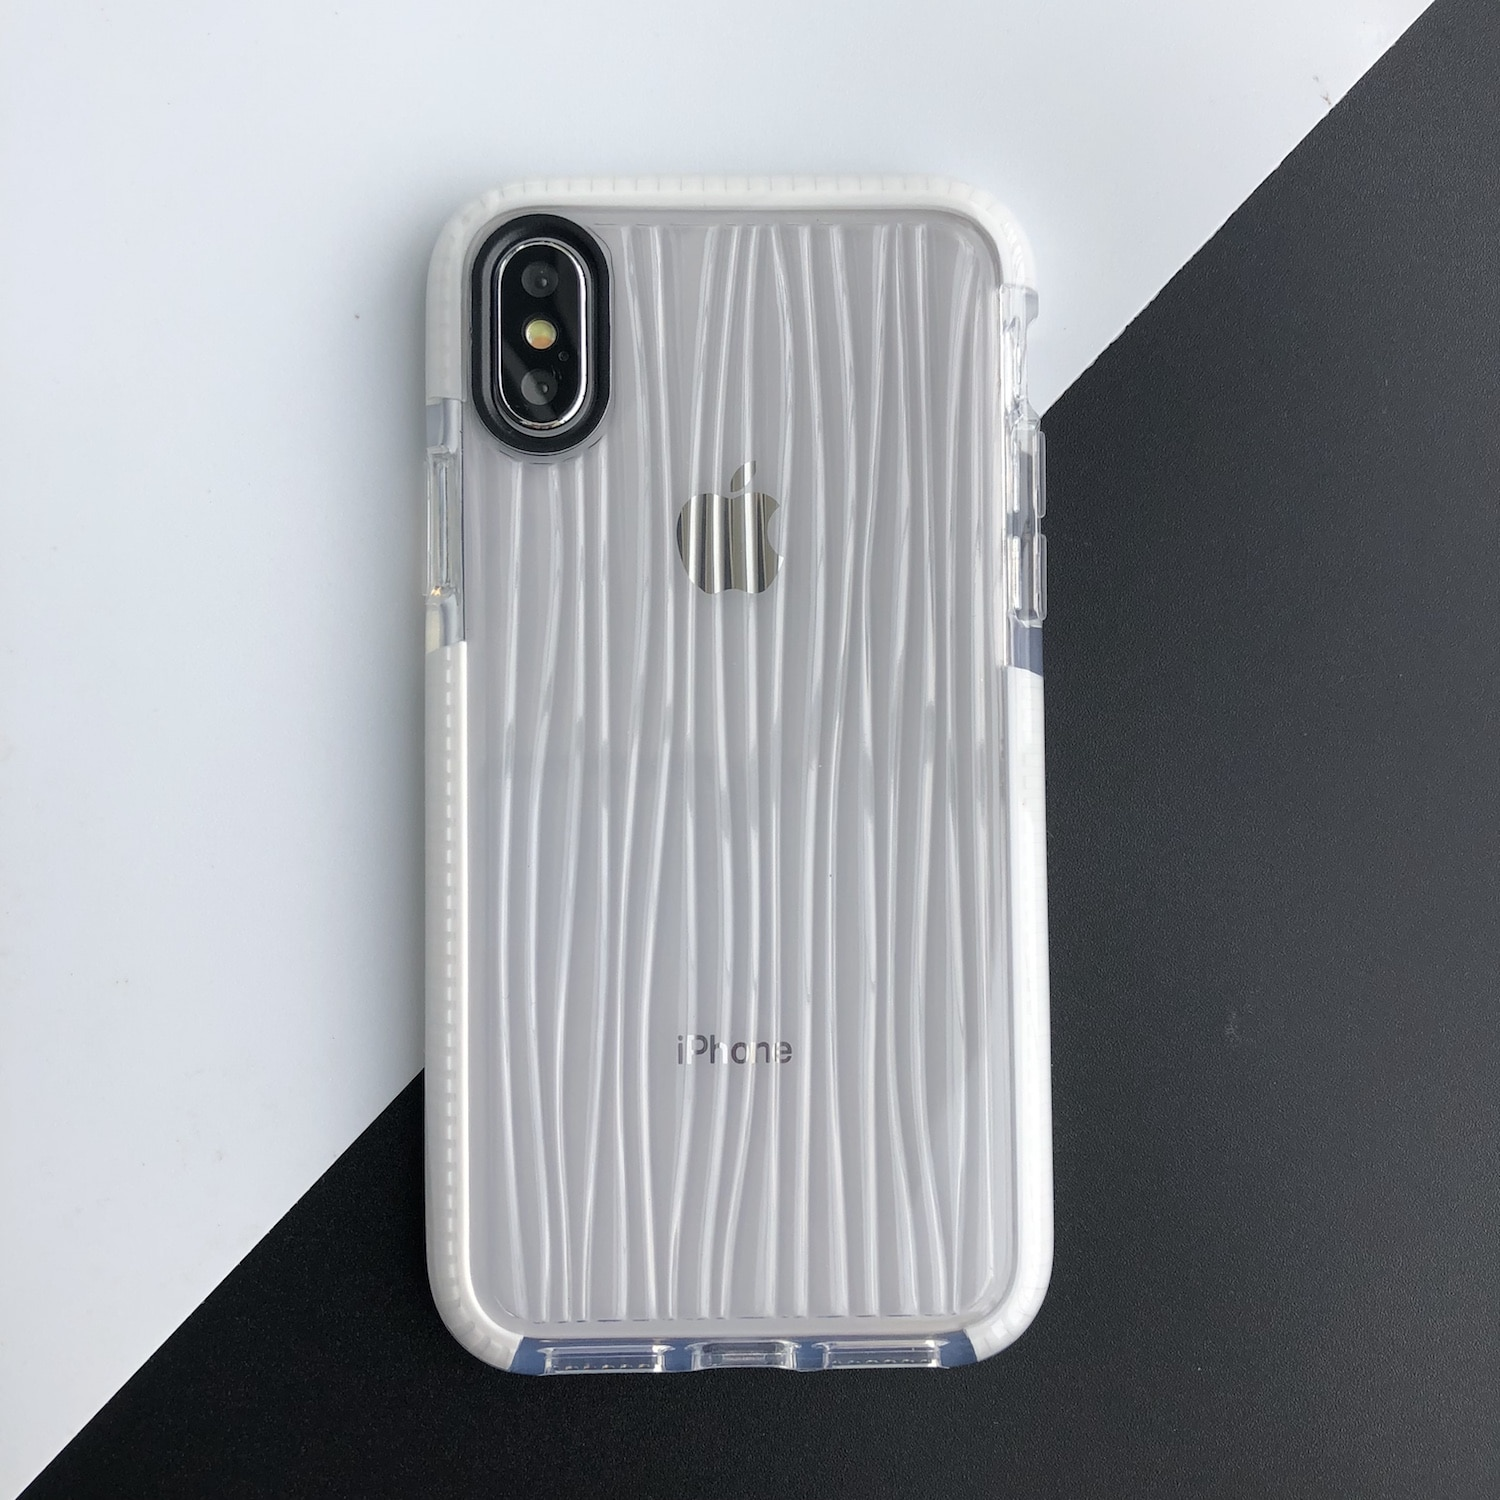 Glyde Protection Case - Premium & Custom iPhone Cases Samsung Glyde Cases